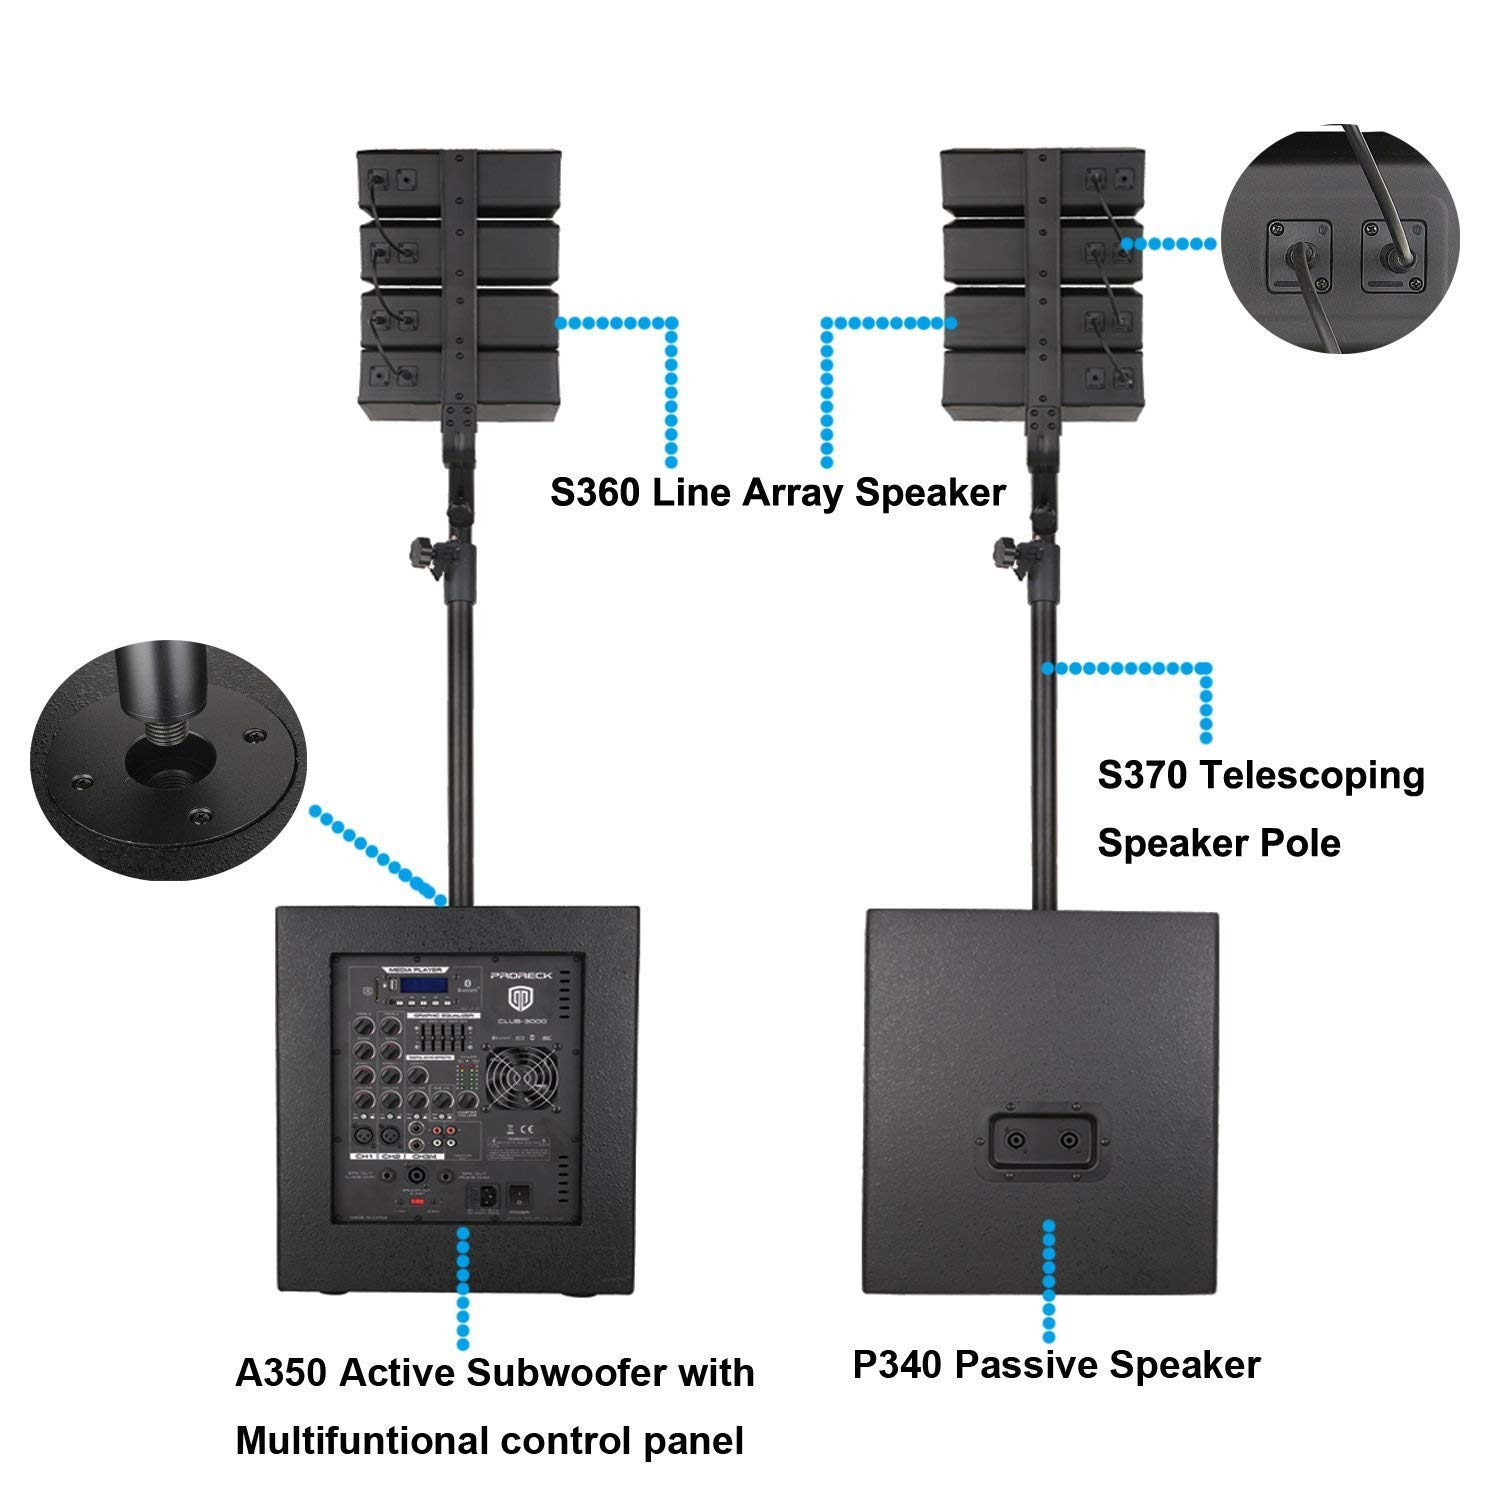 PRORECK Club 3000 12-Inch 3000 Watt DJ/Powered PA Speaker System Combo Set with Bluetooth/USB/SD Card/Remote Control (Two Subwoofers and 8X Array Speakers Set) (Club 3000) by PRORECK (Image #2)